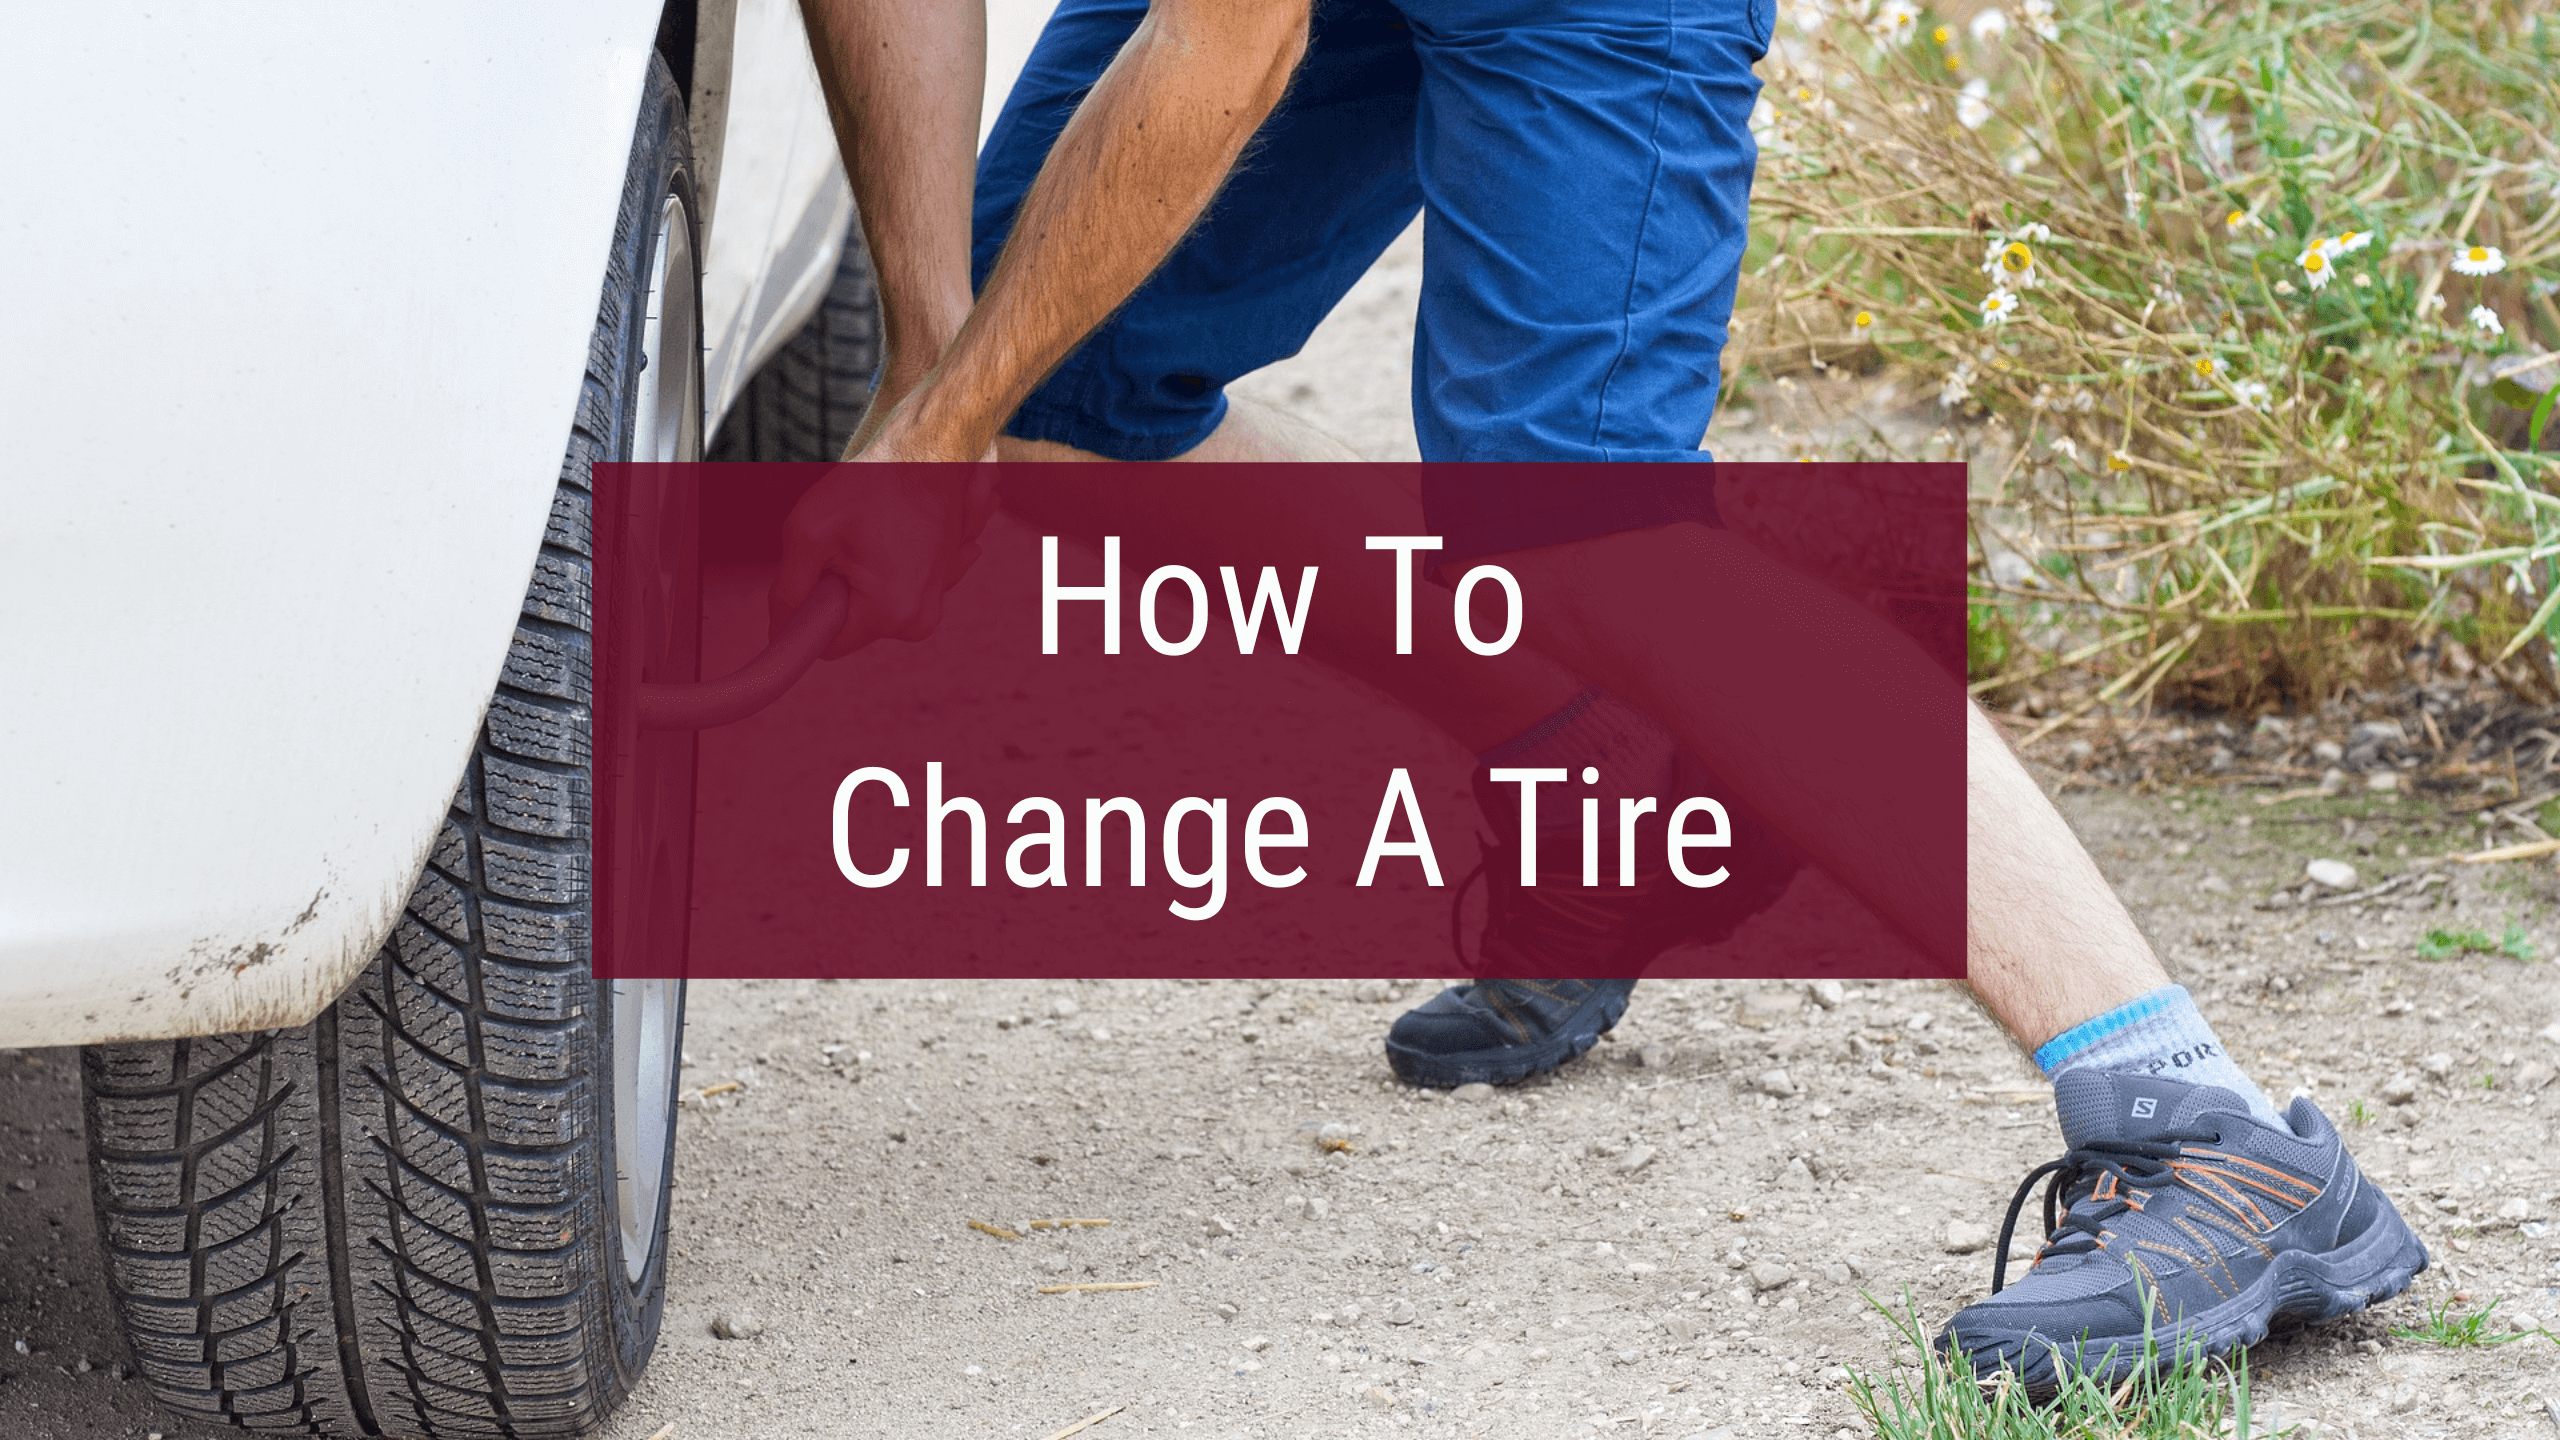 How to change a truck or car tire.